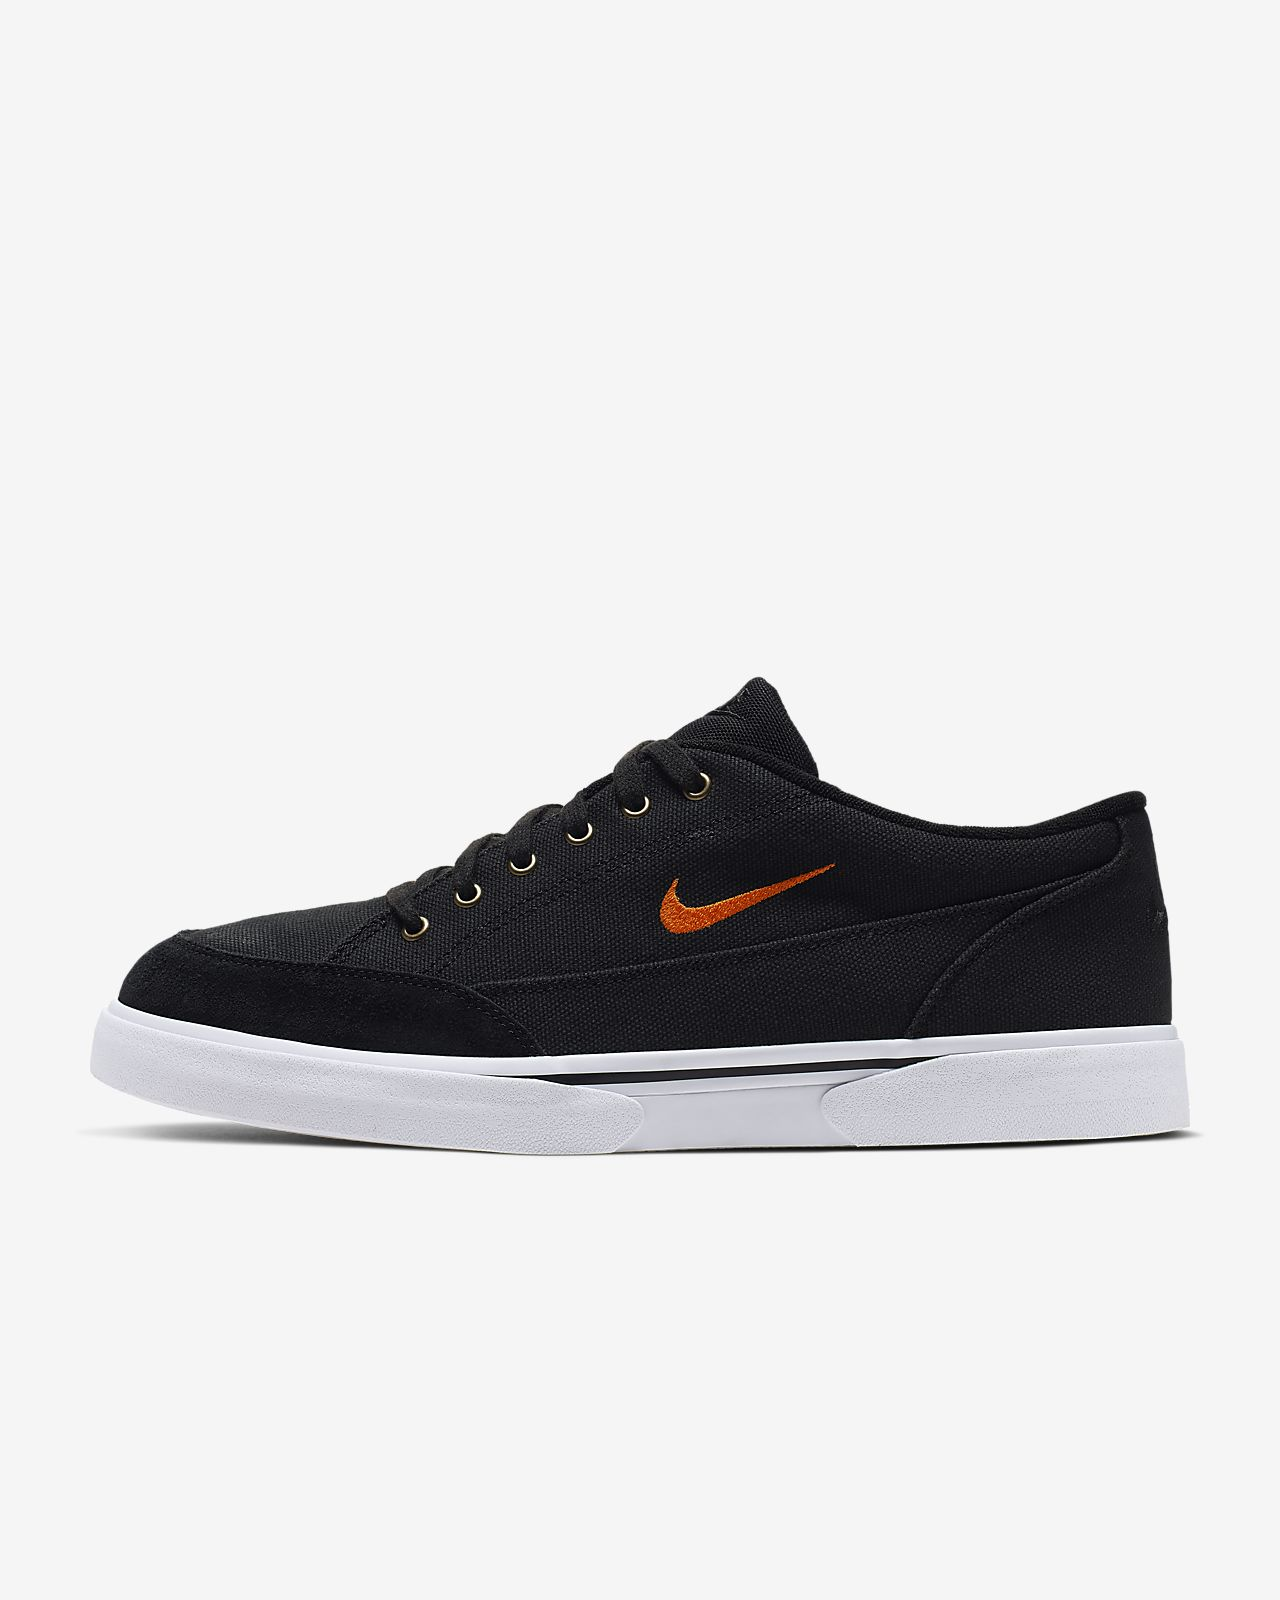 Gts Homme '16 Pour Chaussure Nike Txt nwP80kXO